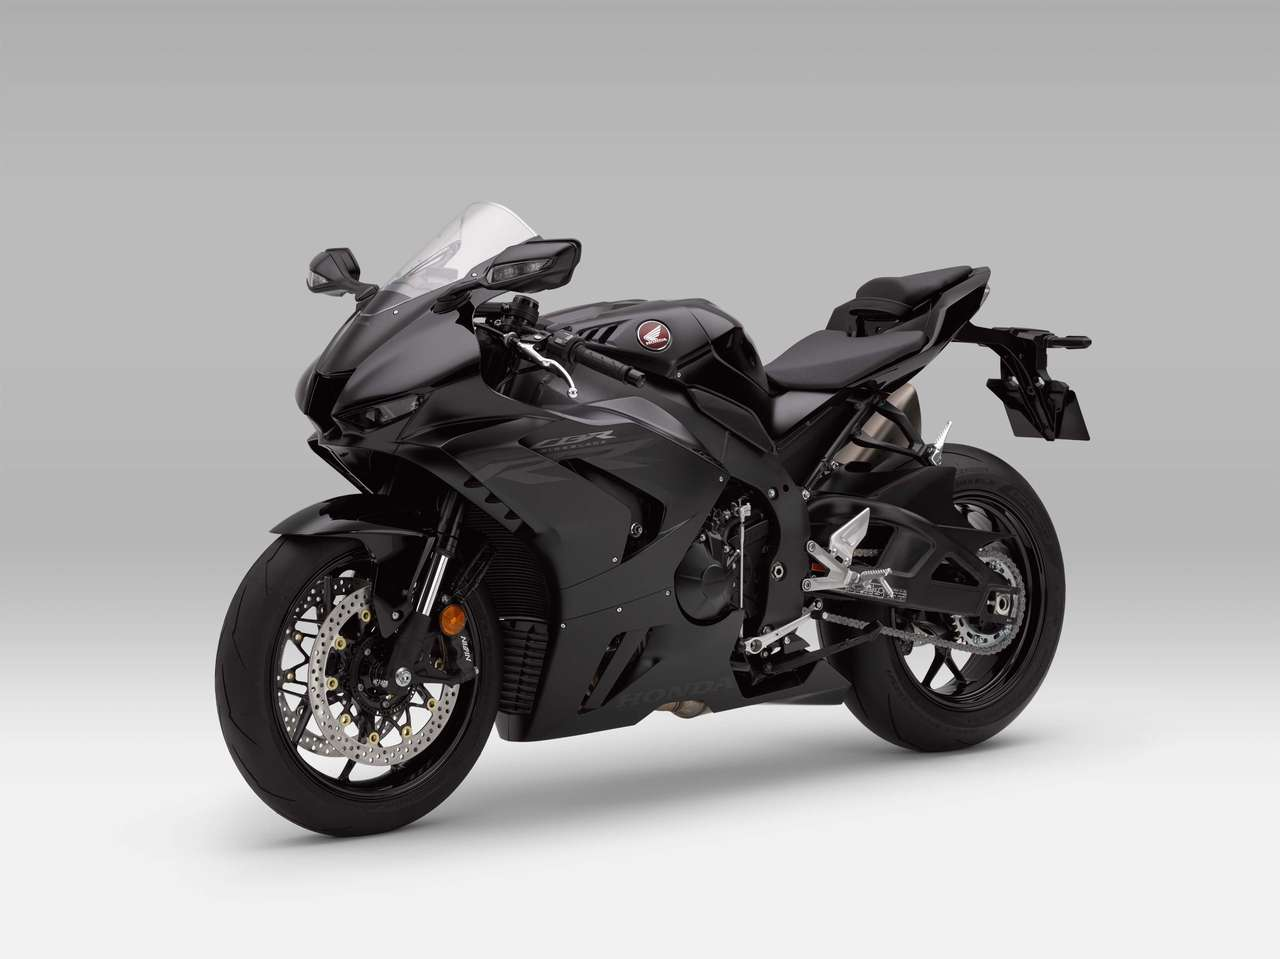 Standardversion CBR1000RR-R Fireblade